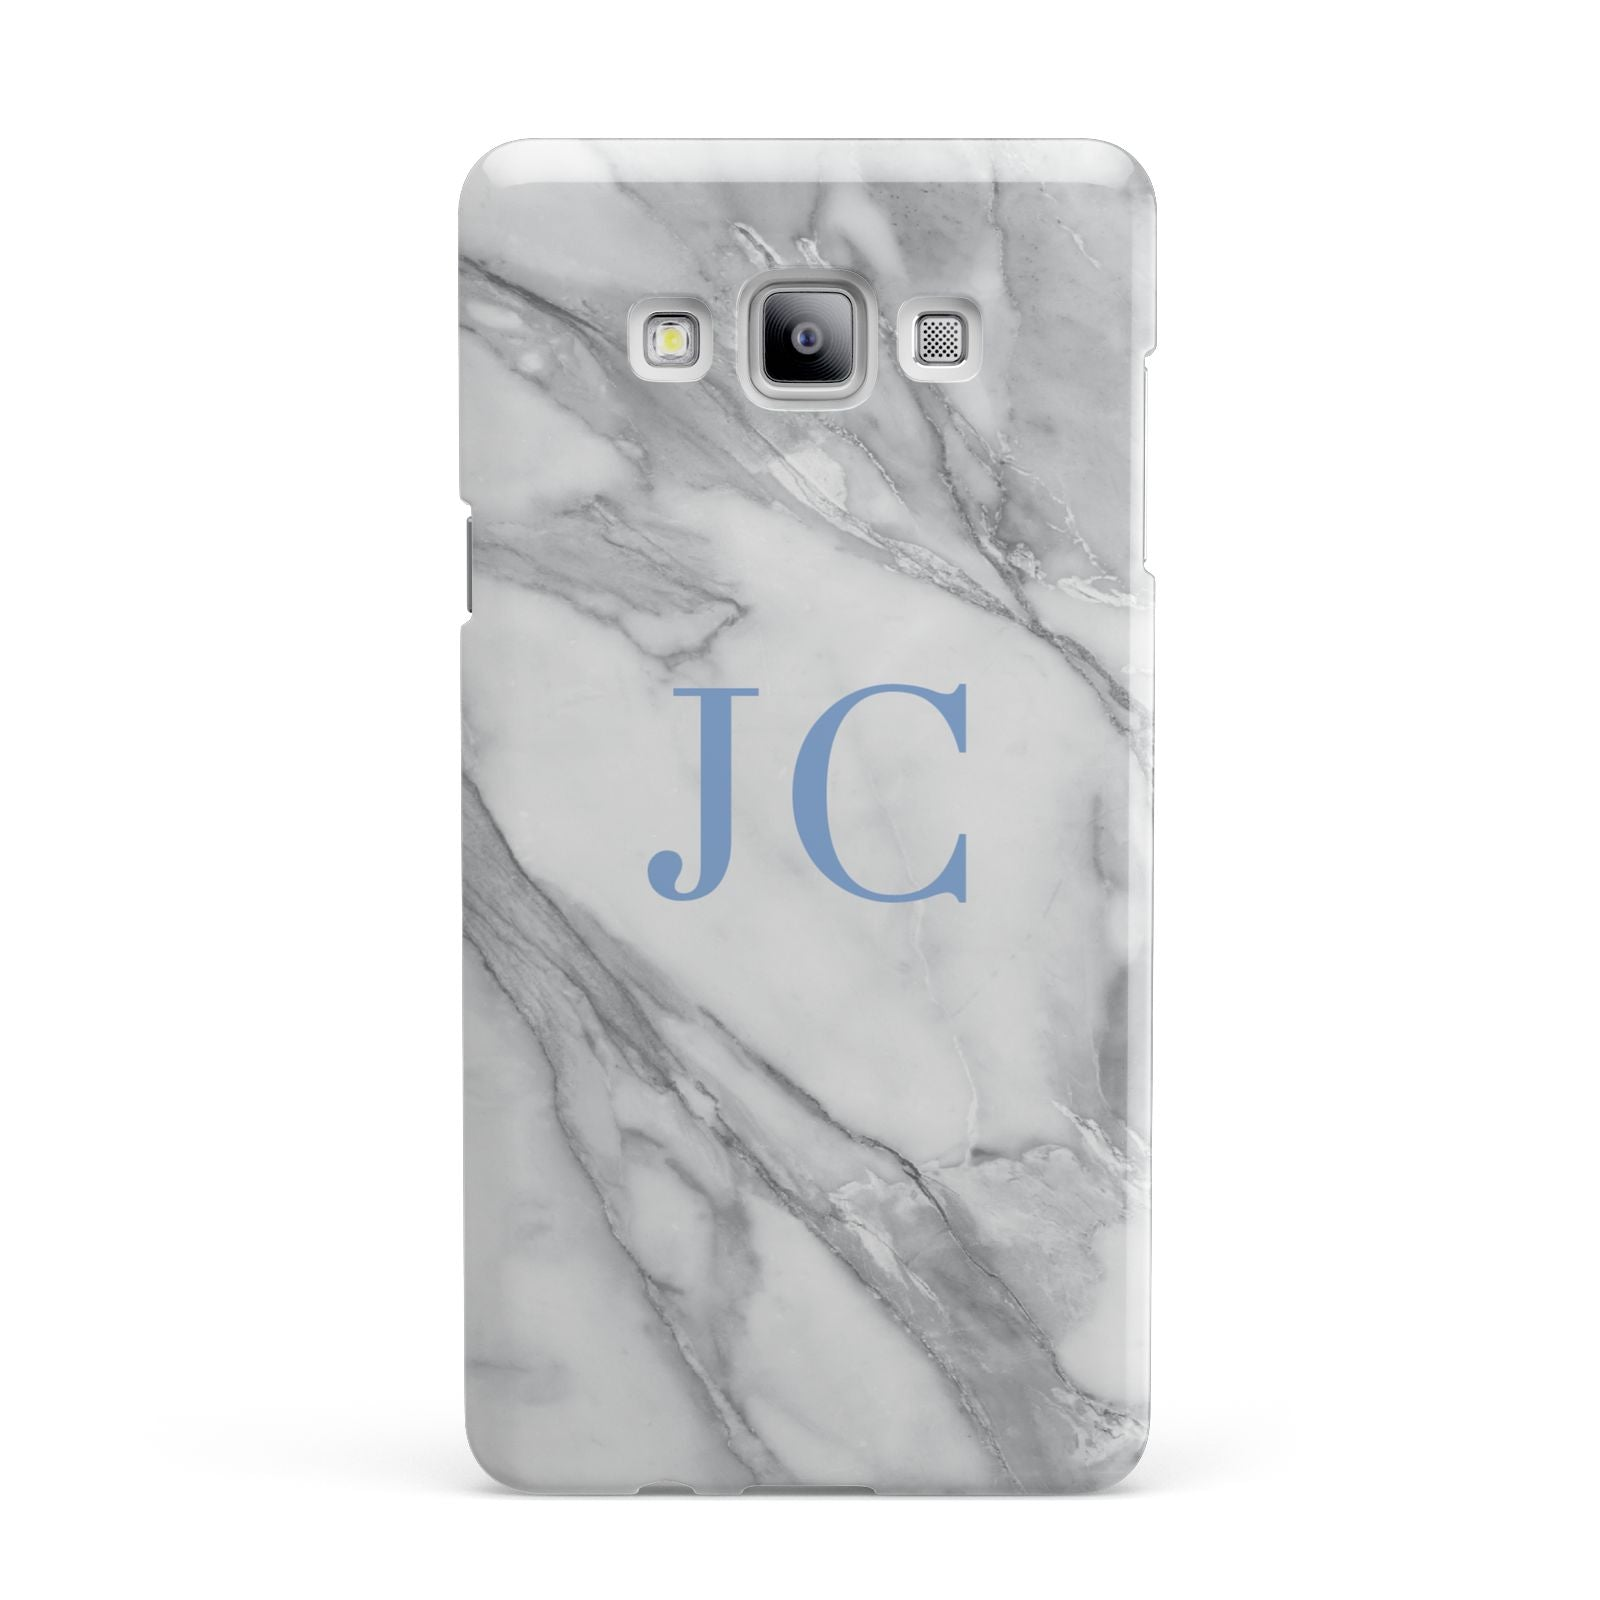 Grey Marble Blue Initials Samsung Galaxy A7 2015 Case